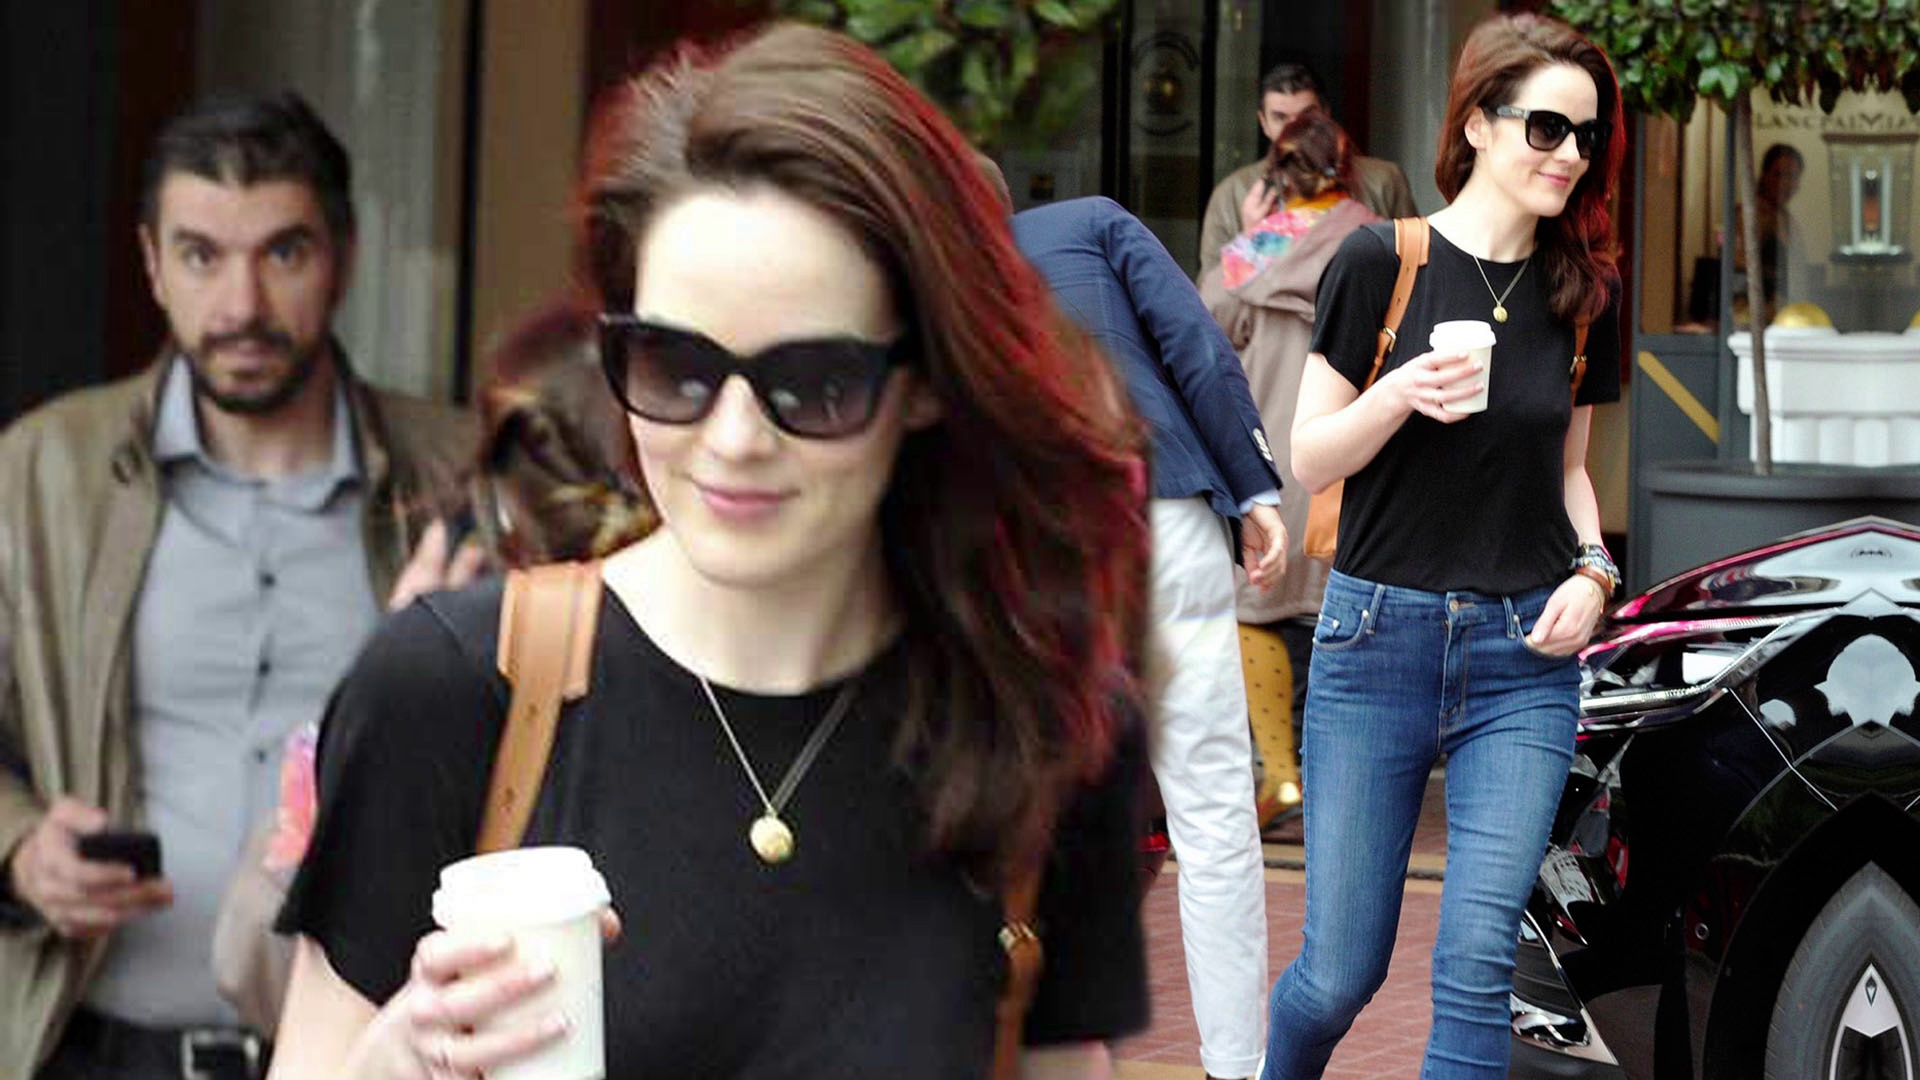 Michelle-Dockery-cuts-a-casual-figure-in-a-black -shirtand -jeans asshe-leaves-Cannes -afterwinning-festival-award. http://bit.ly/2zwnQ1x